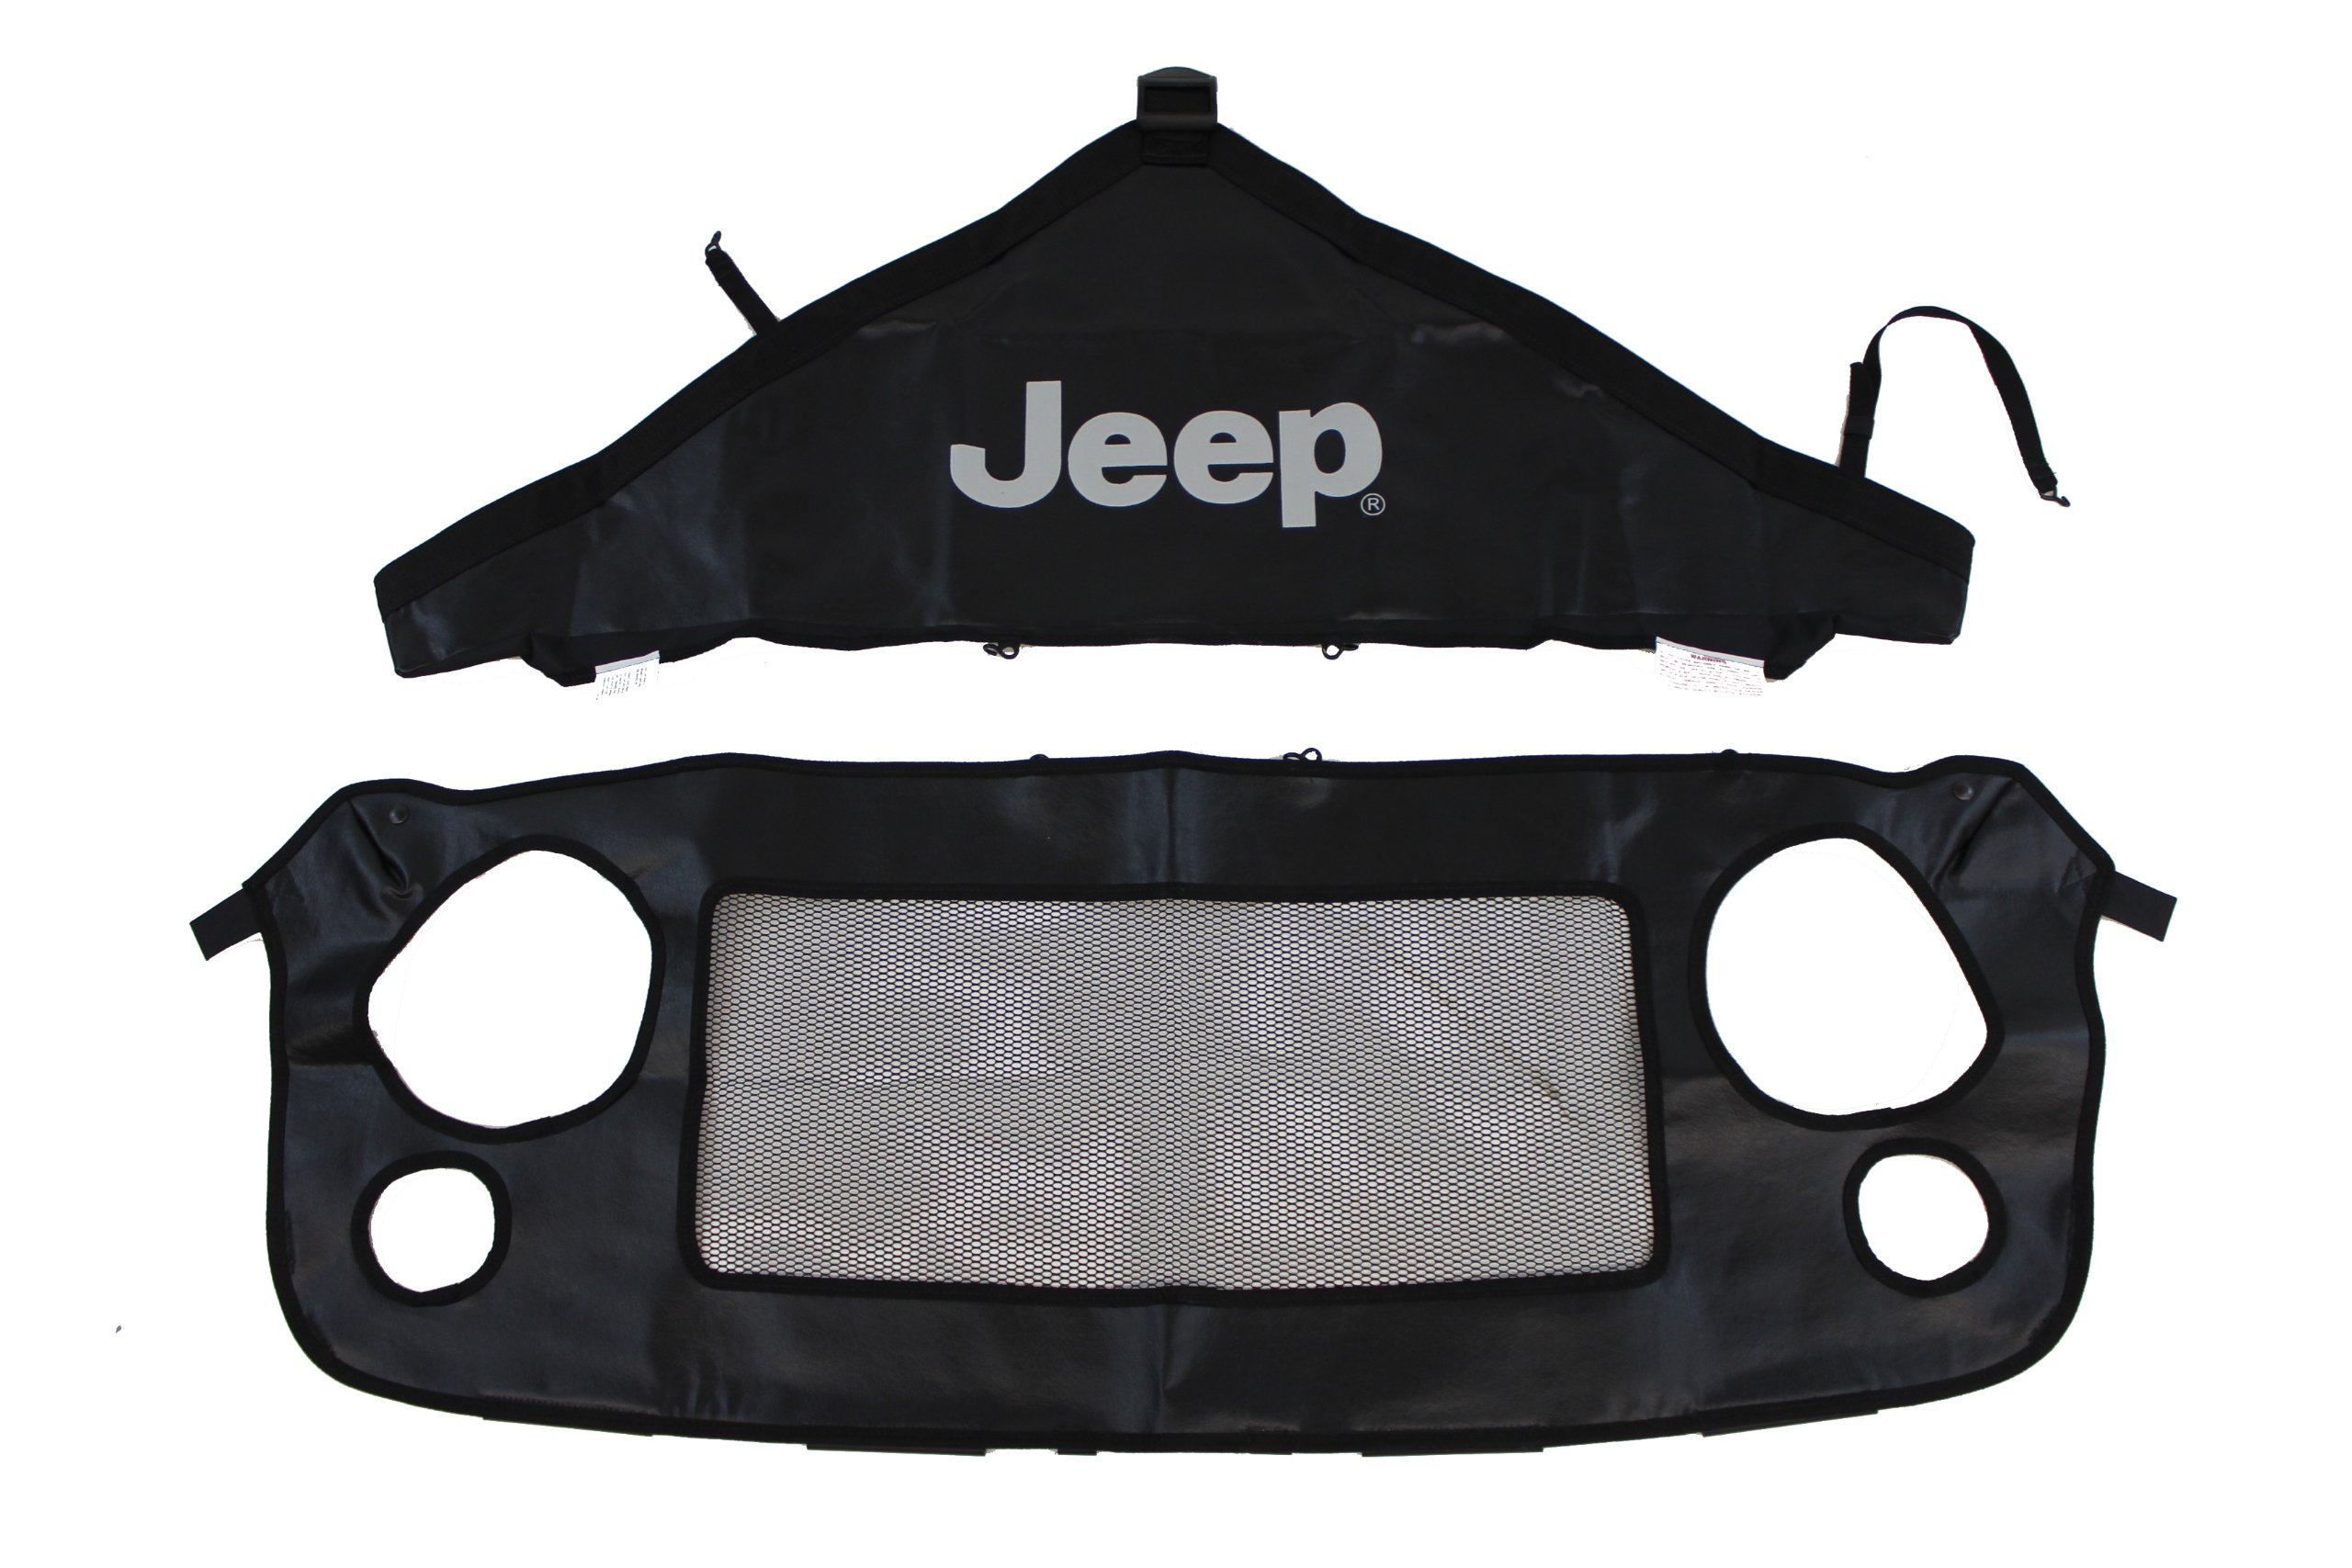 Genuine Jeep Accessories 82210318AB Front End Cover Black With Jeep logo